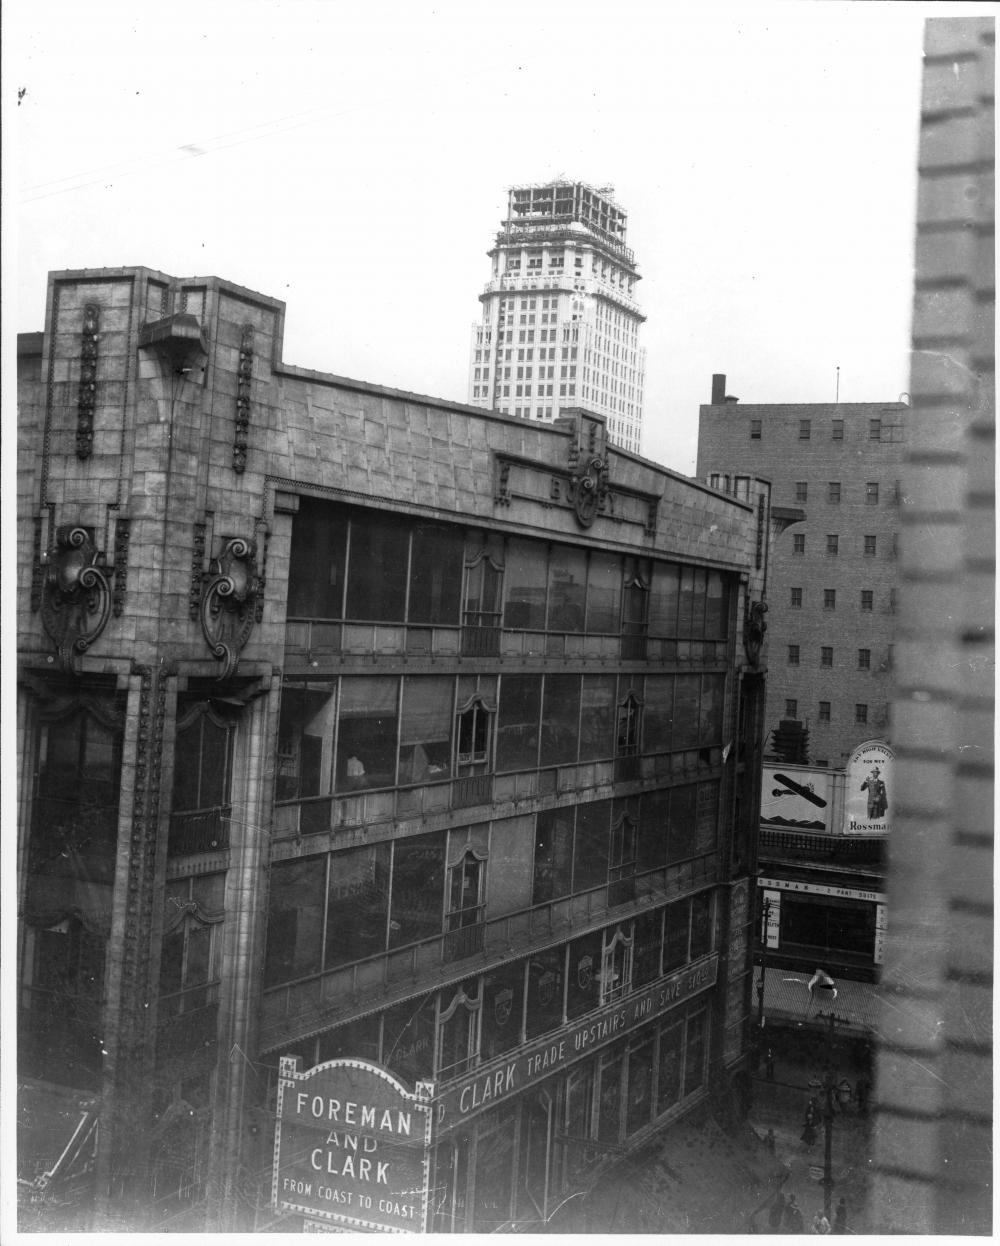 Downtown S Foreman Clark Building To Become 124: Boley Building And Telephone Building